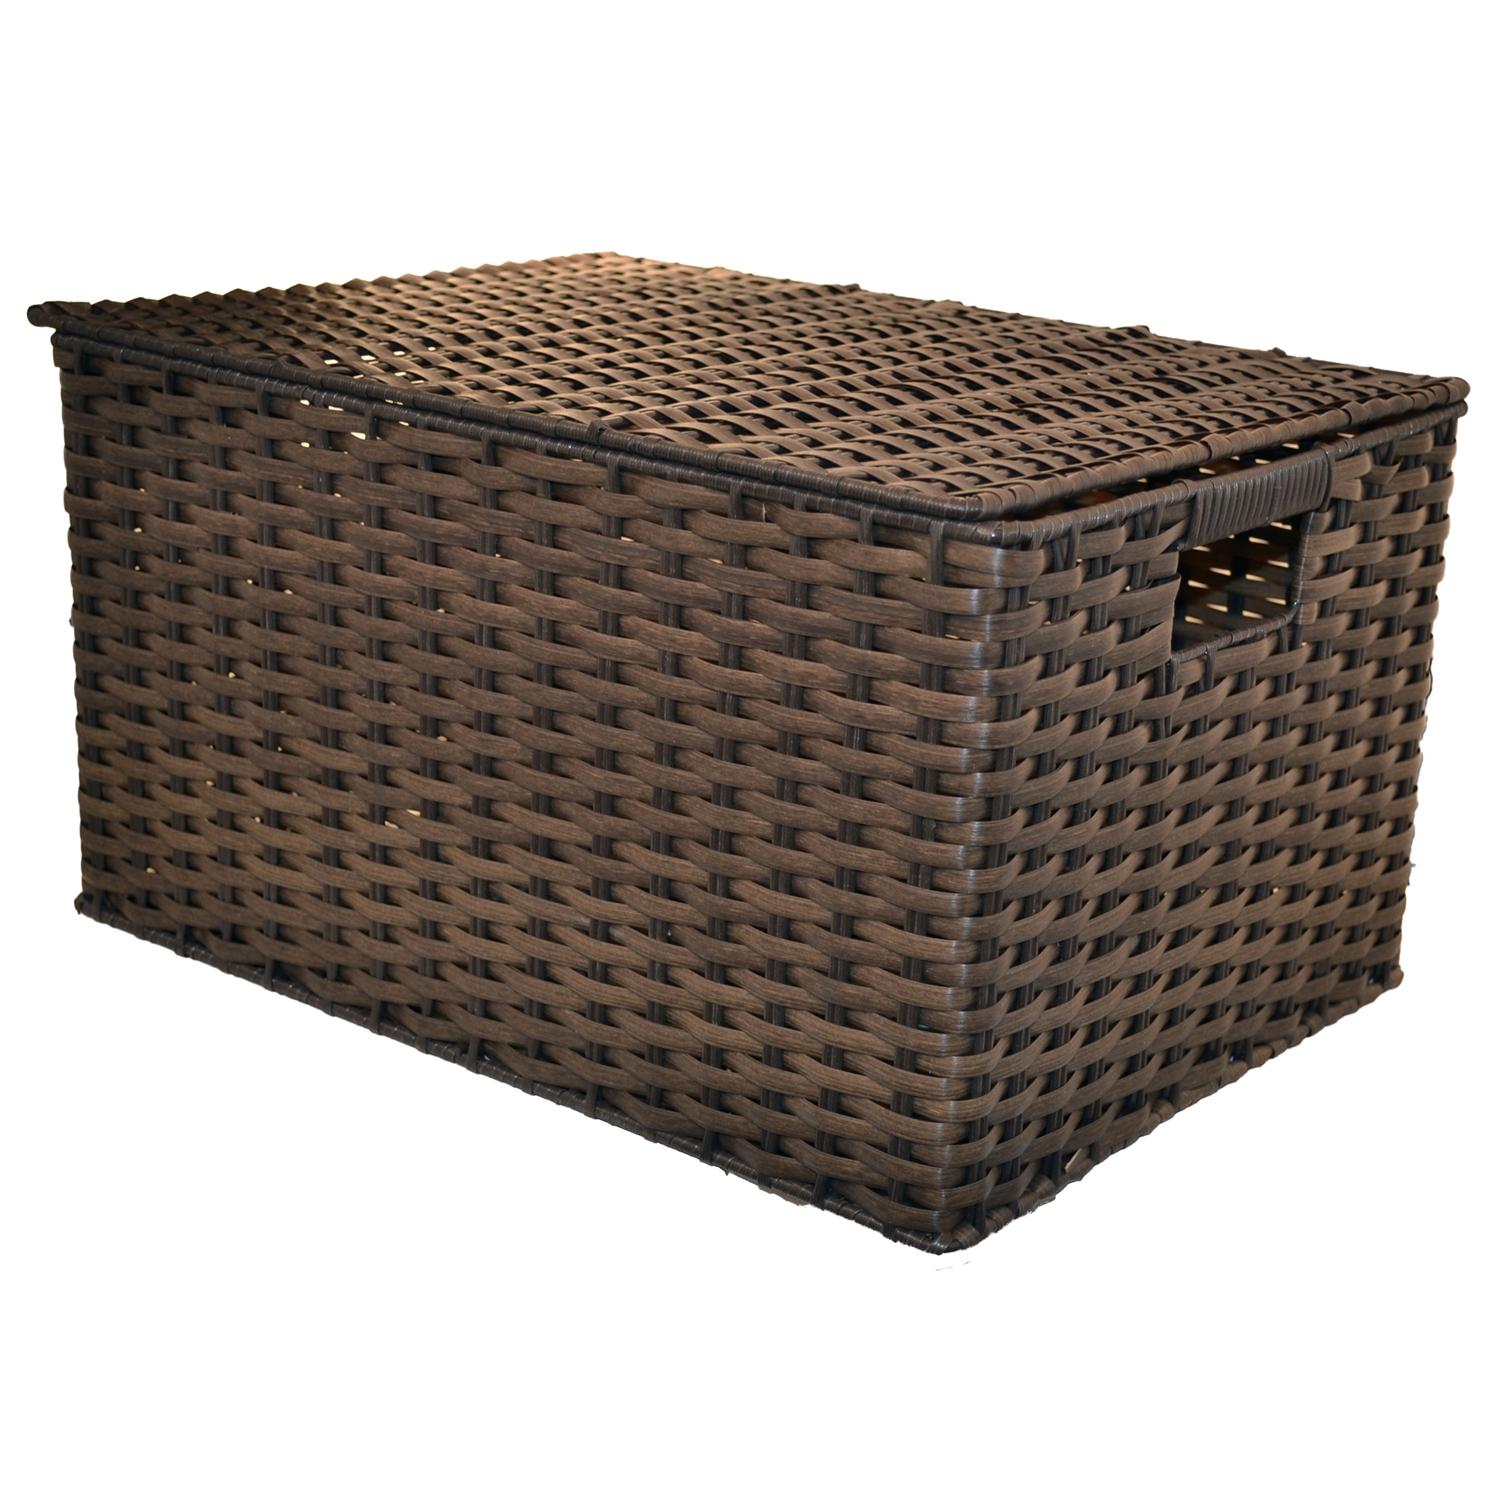 Image of Casa Woven Storage Large, Brown